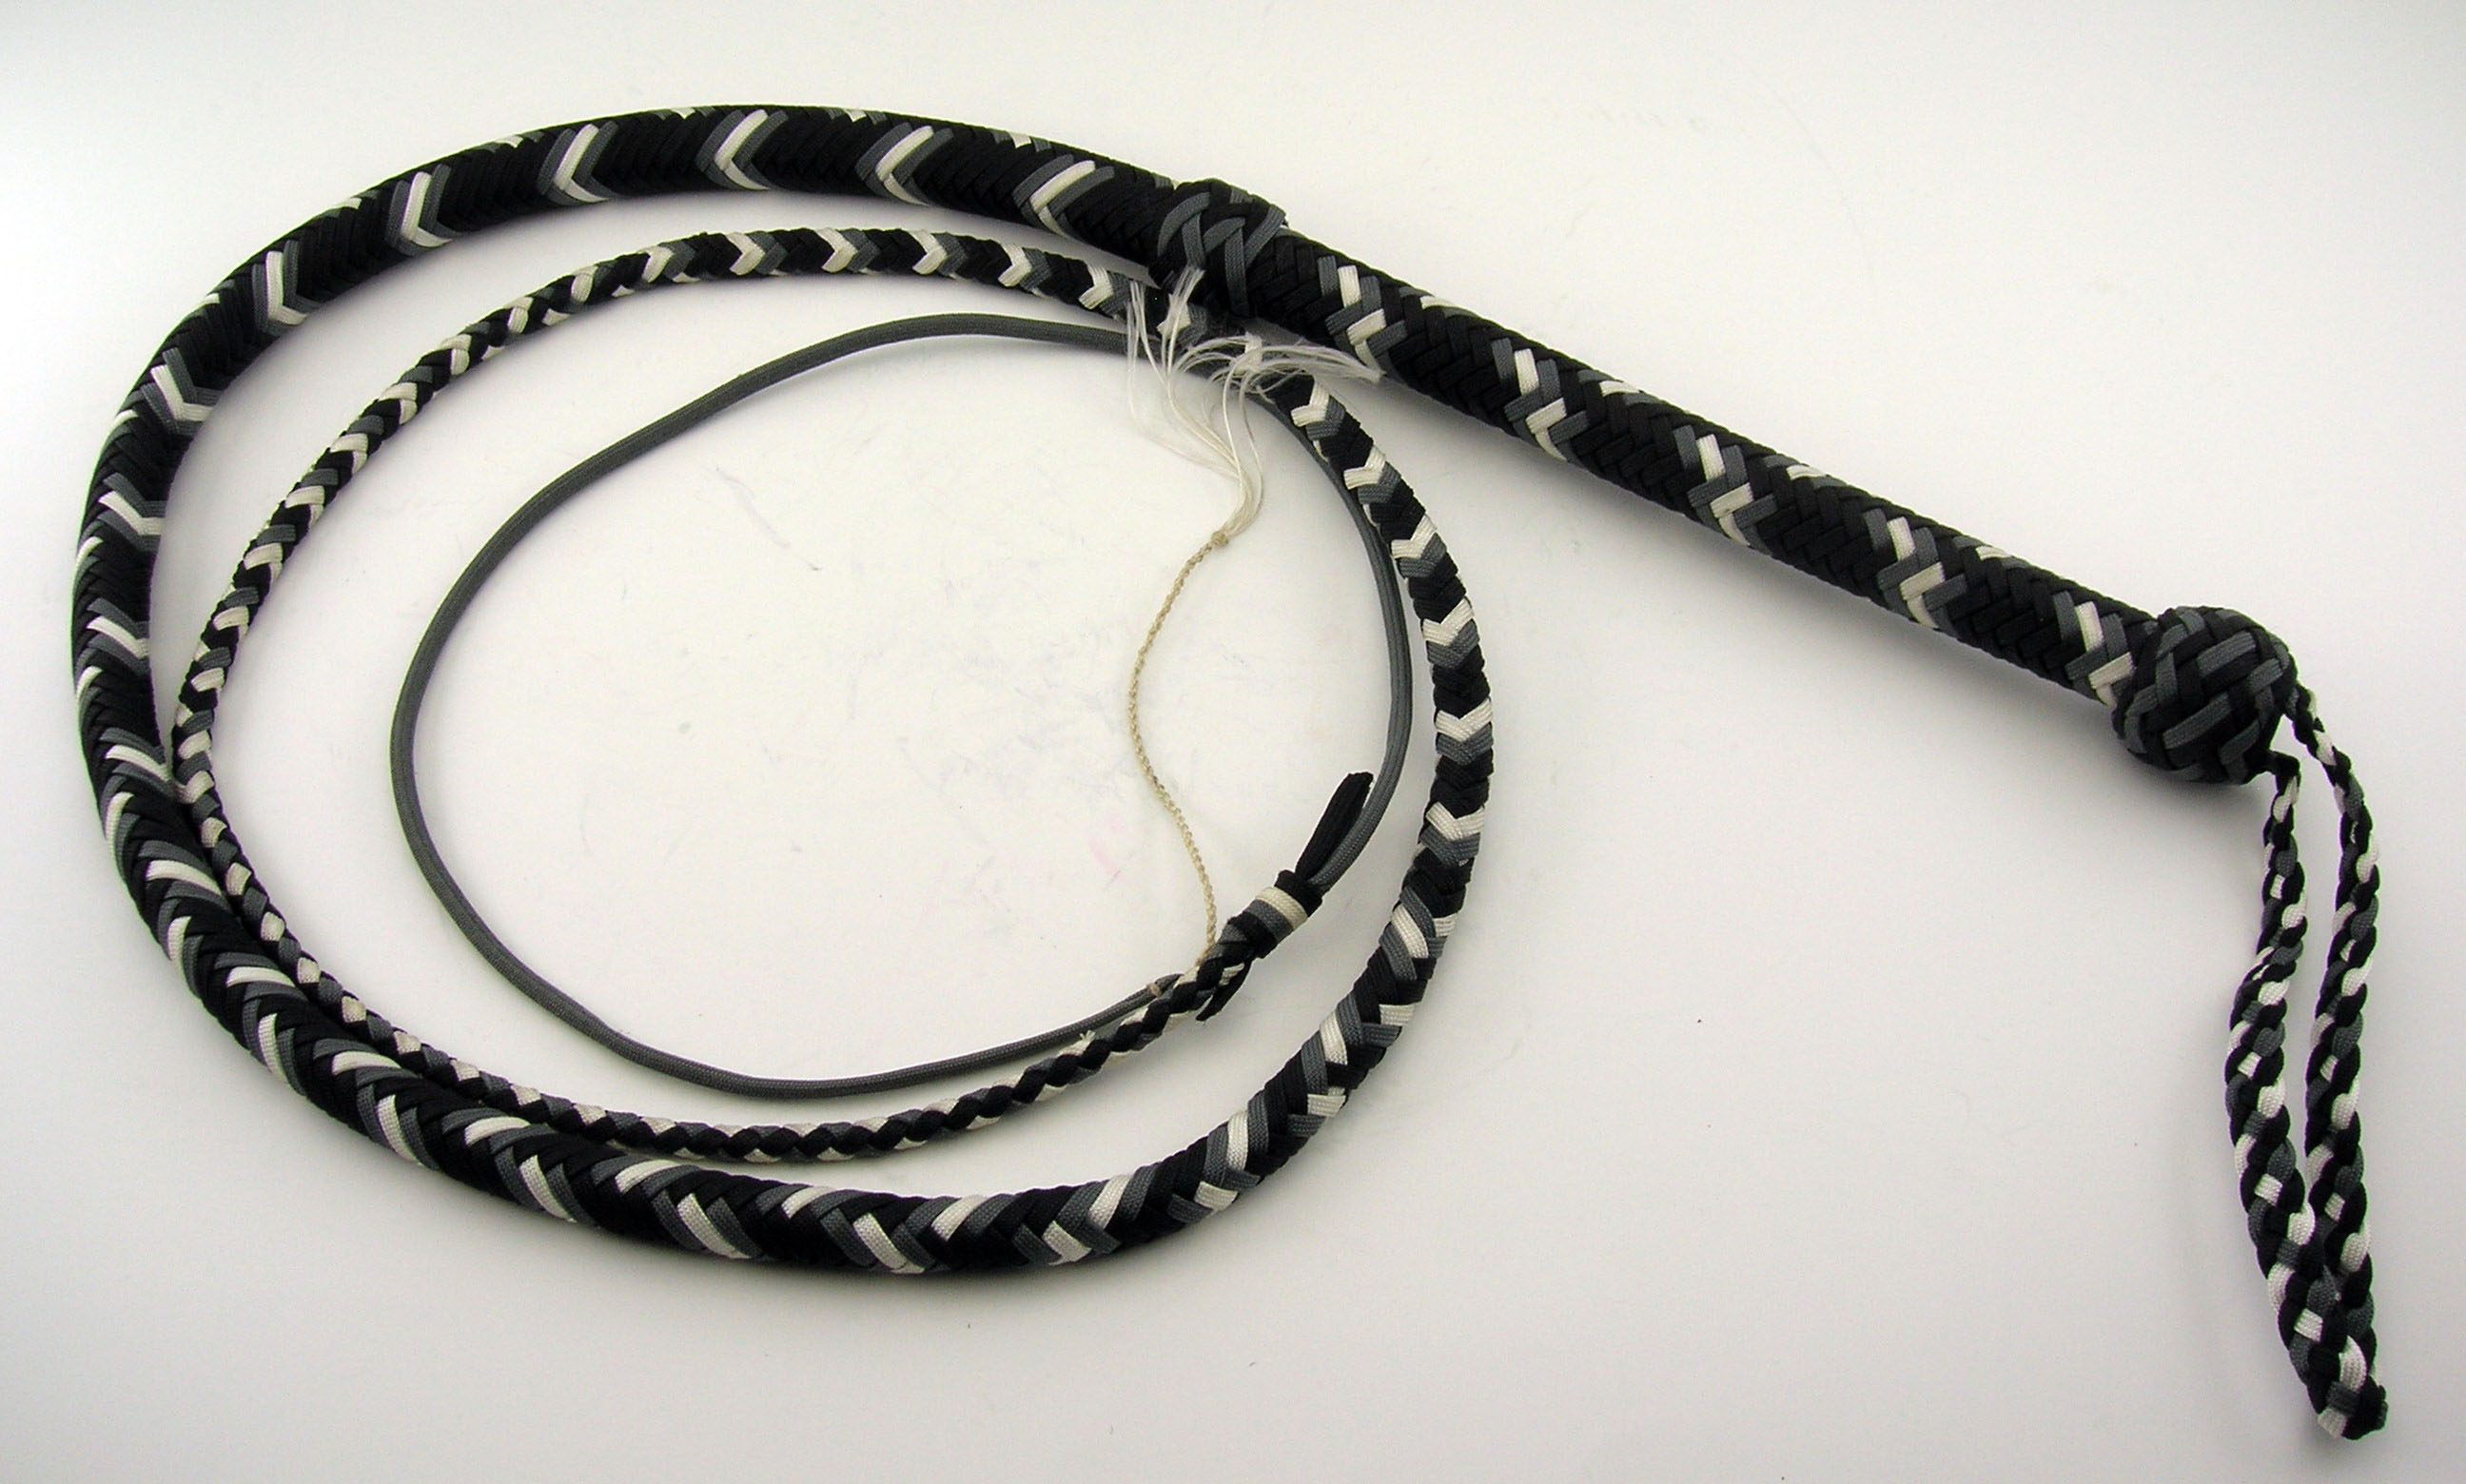 Black grey & White 6ft Nylon Bull Whip